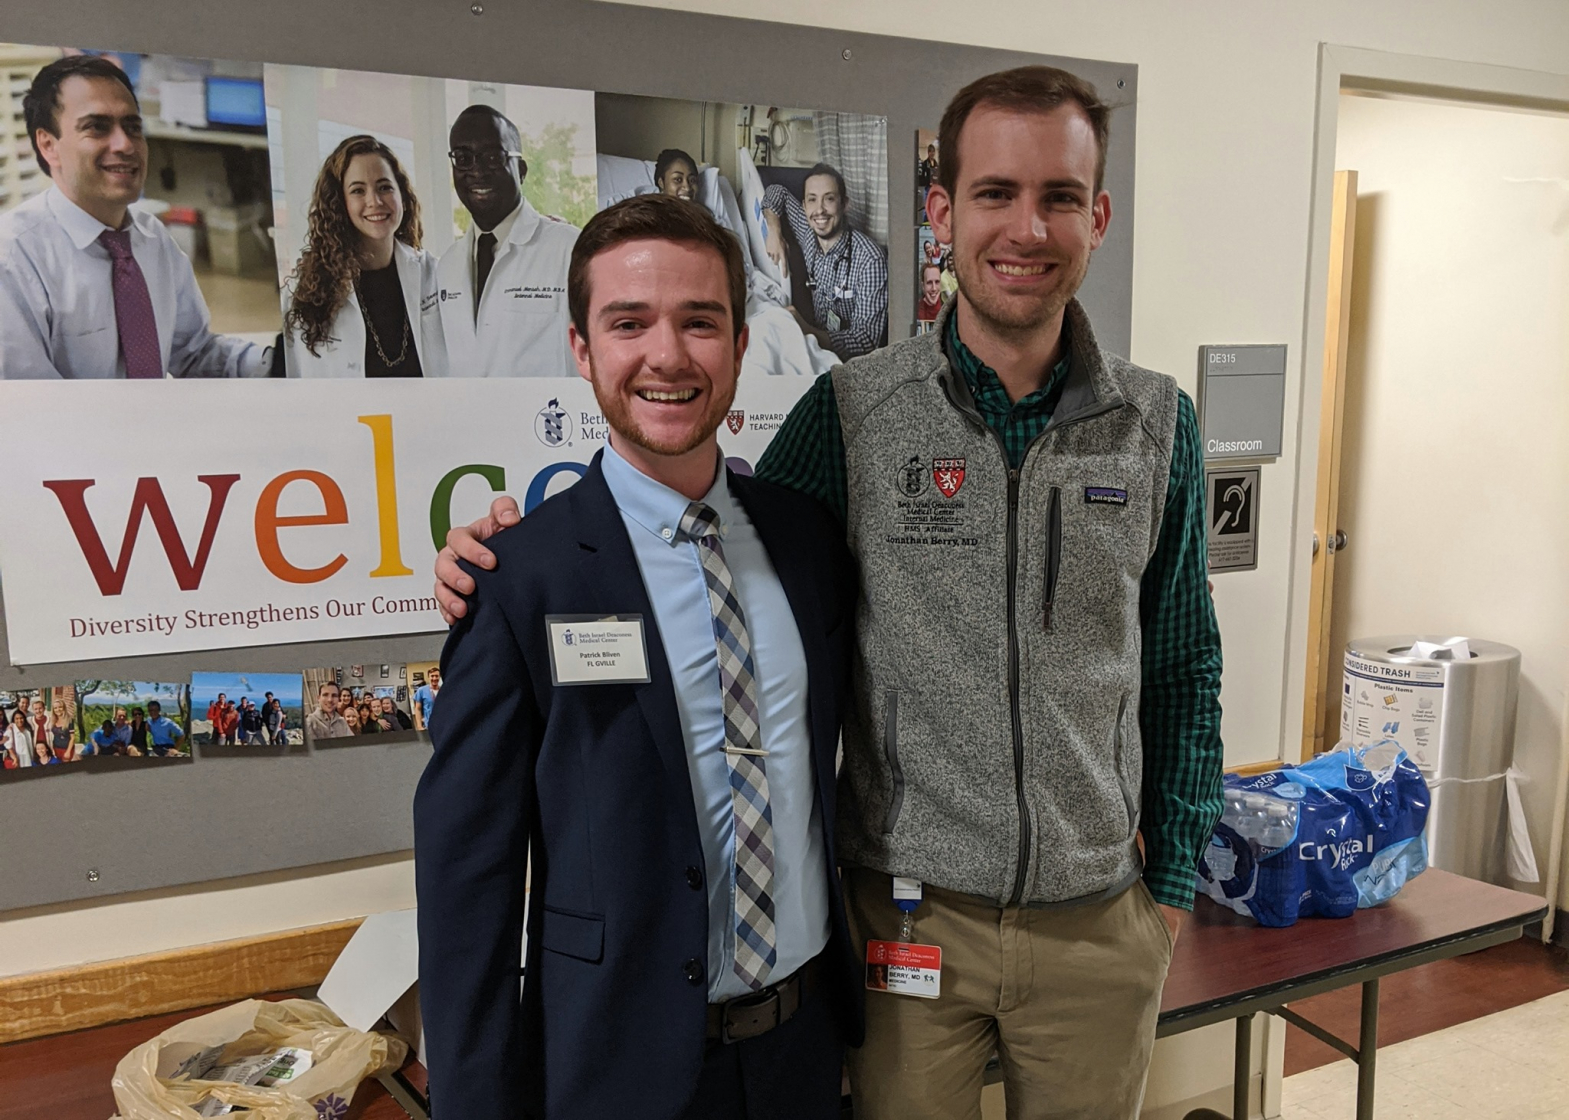 Patrick Bliven connected with internal medicine resident Jonathan Berry, M.D. '17, while interviewing for a residency at Beth Israel Deaconess Medical Center in Boston.